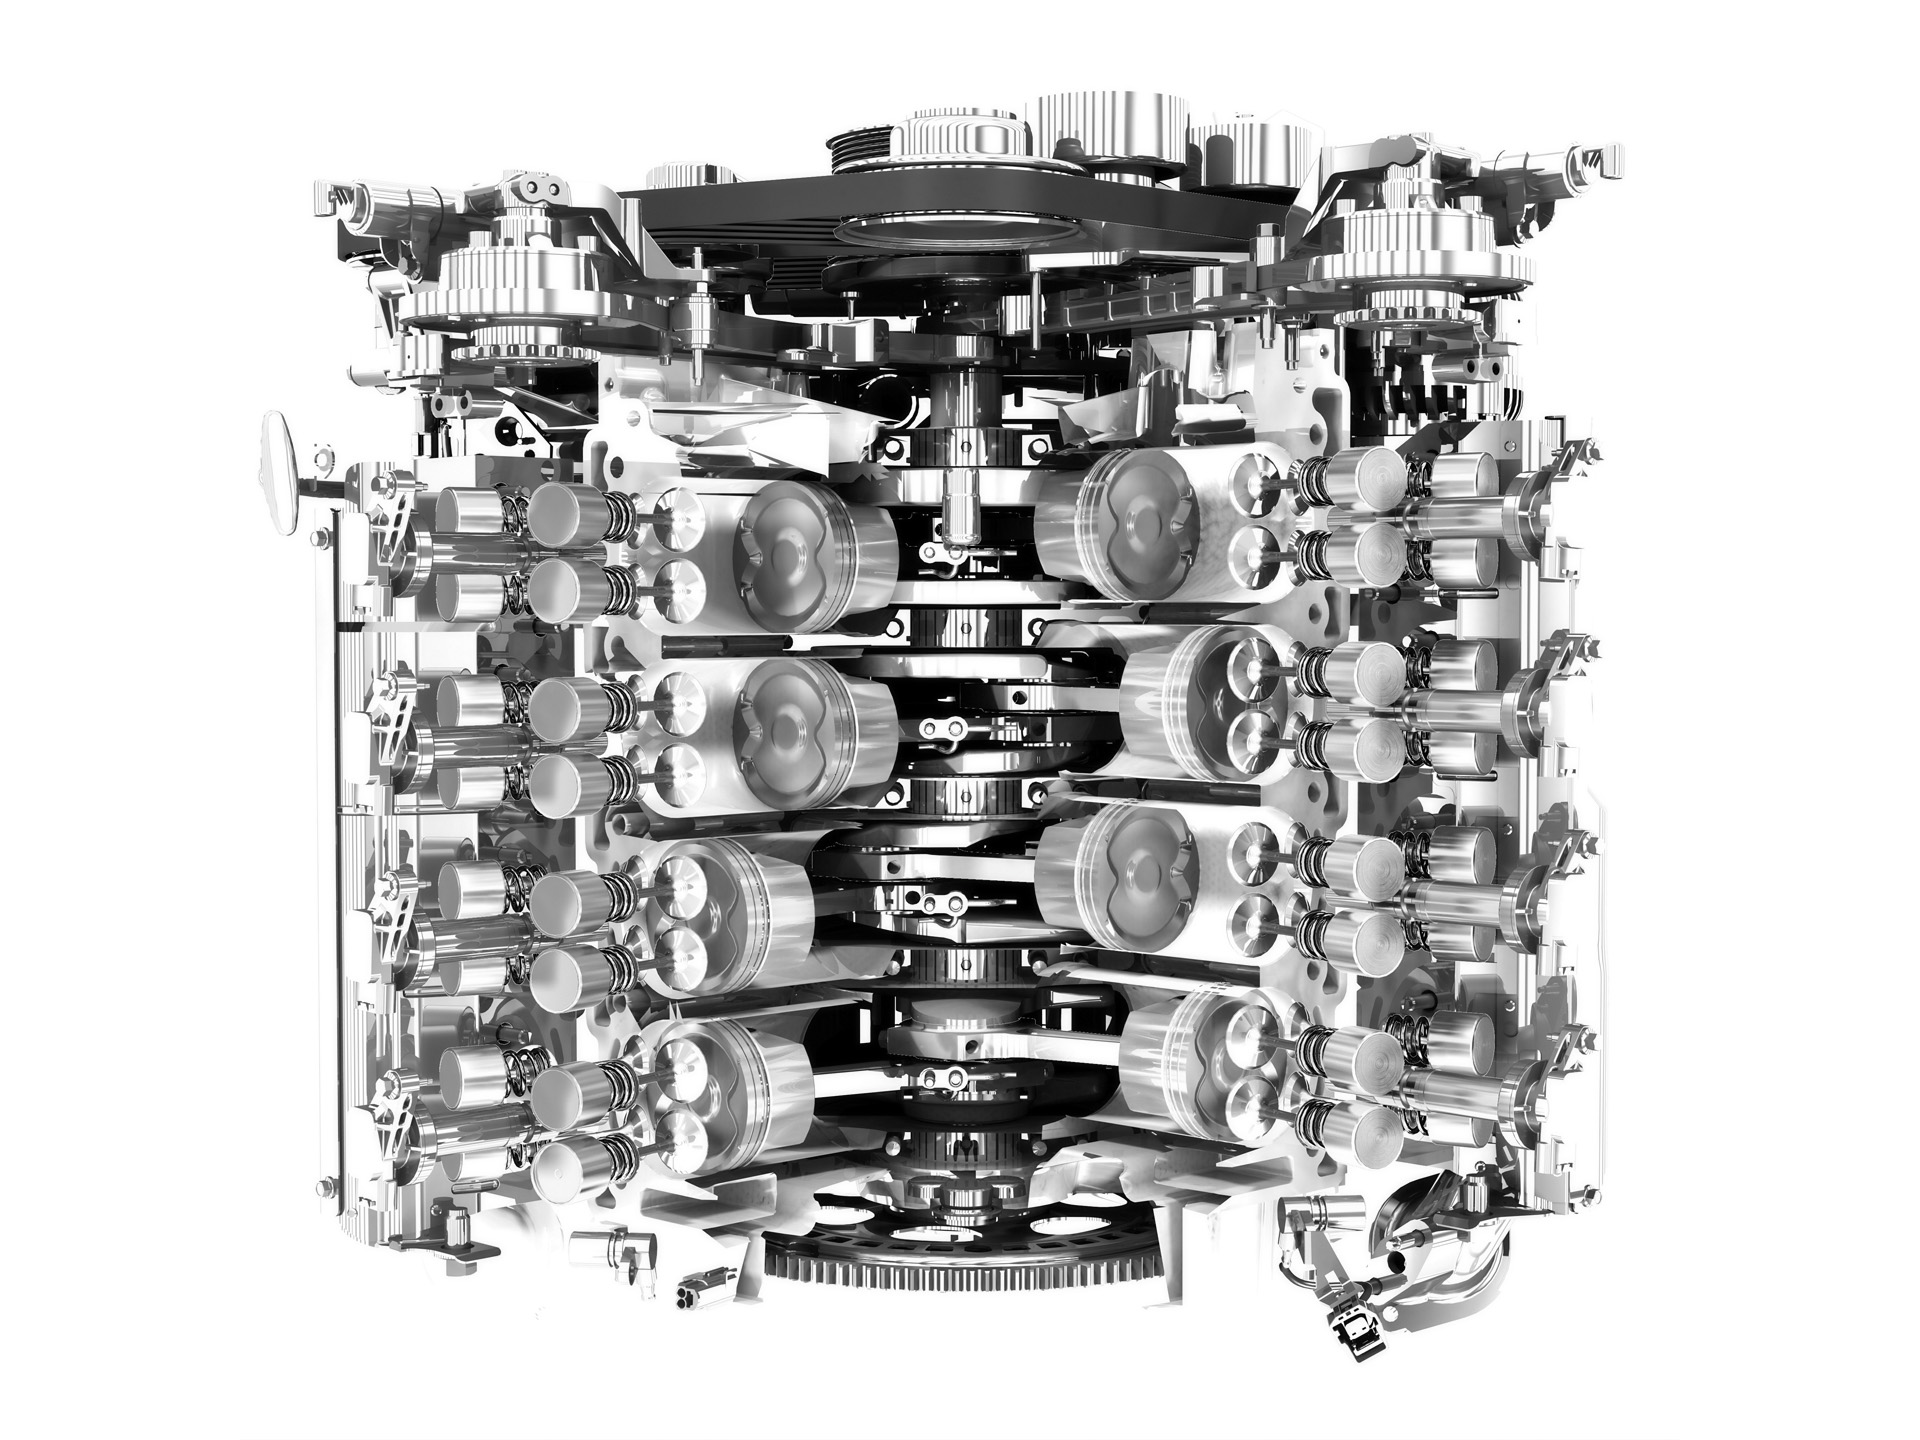 Sample P1281 Engine